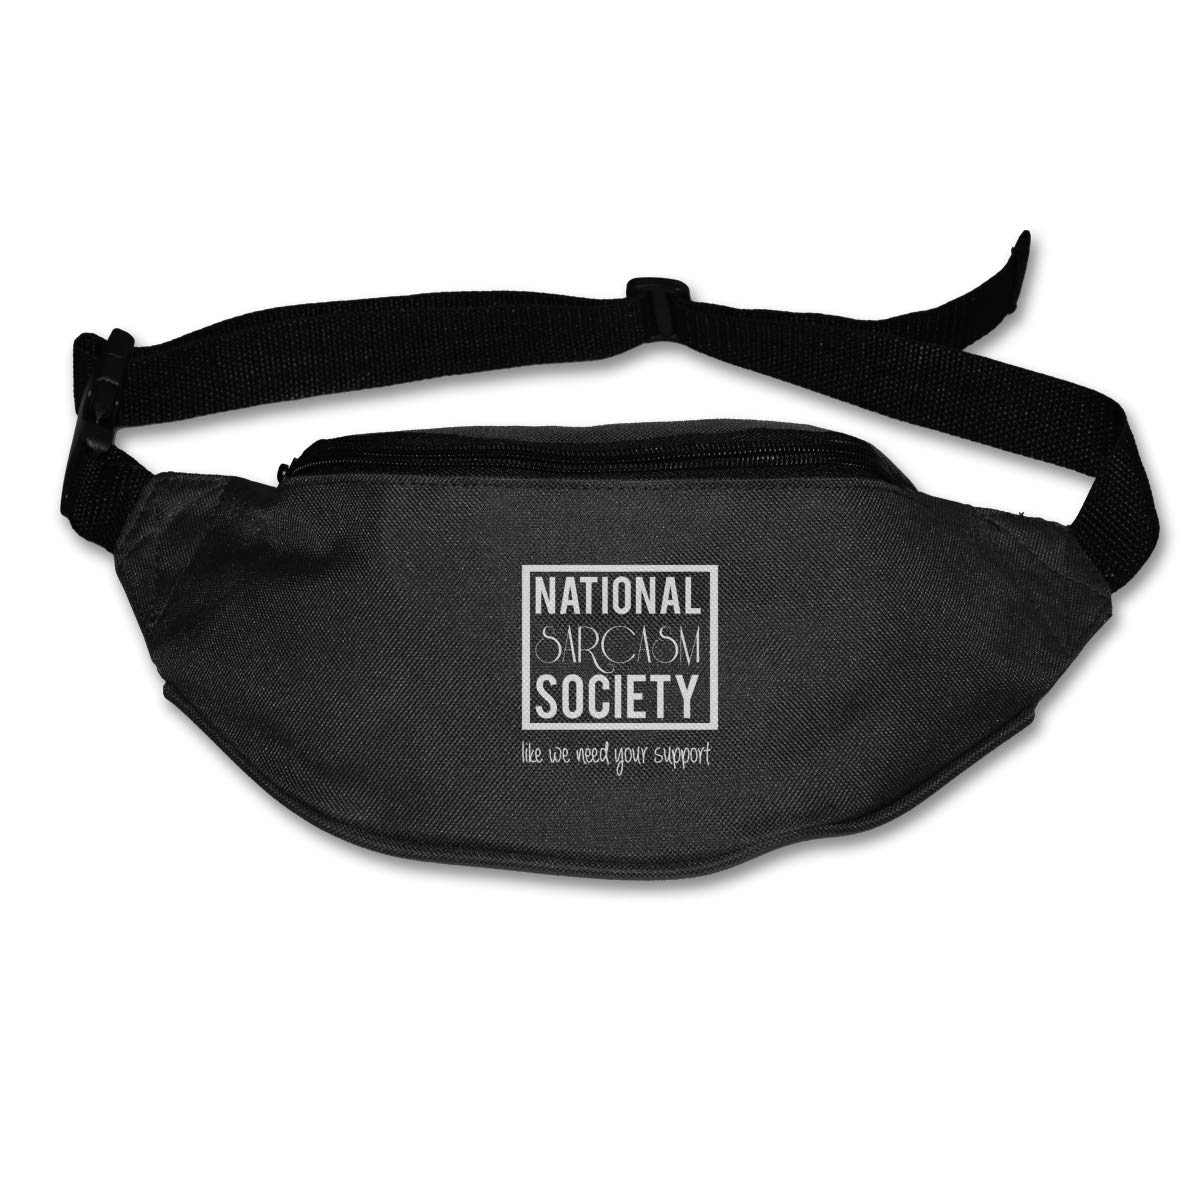 National Sarcasm Society Like We Need Your Support Sport Waist Packs Fanny Pack